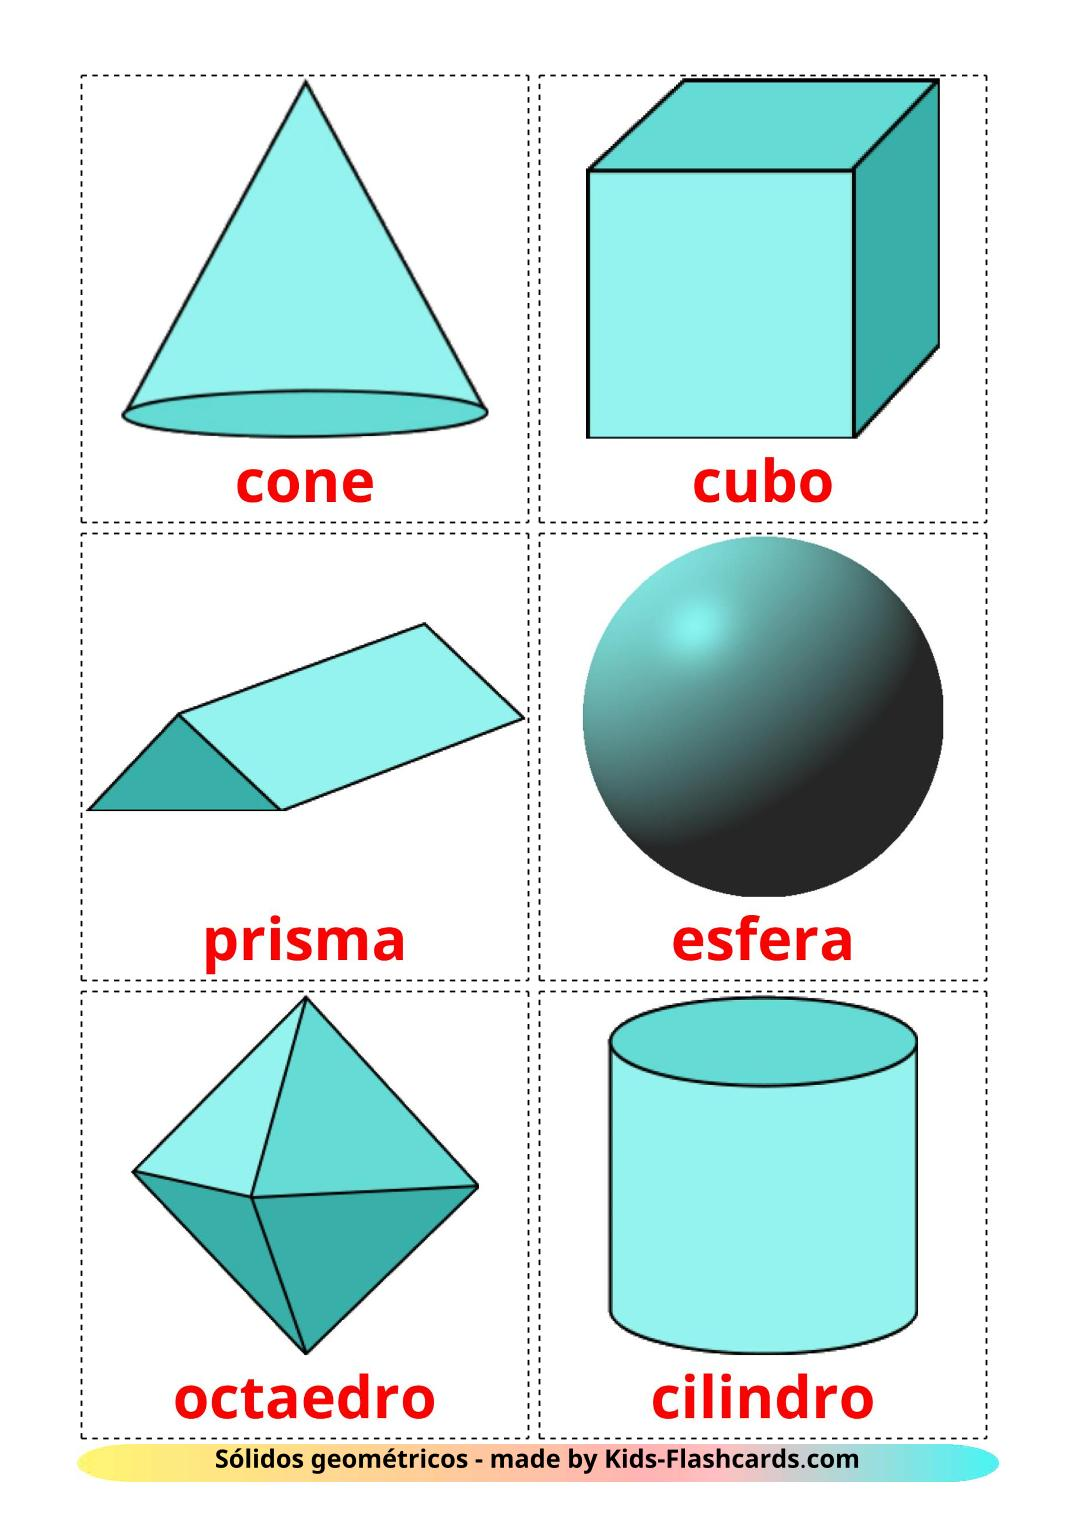 3D Shapes - 17 Free Printable portuguese Flashcards